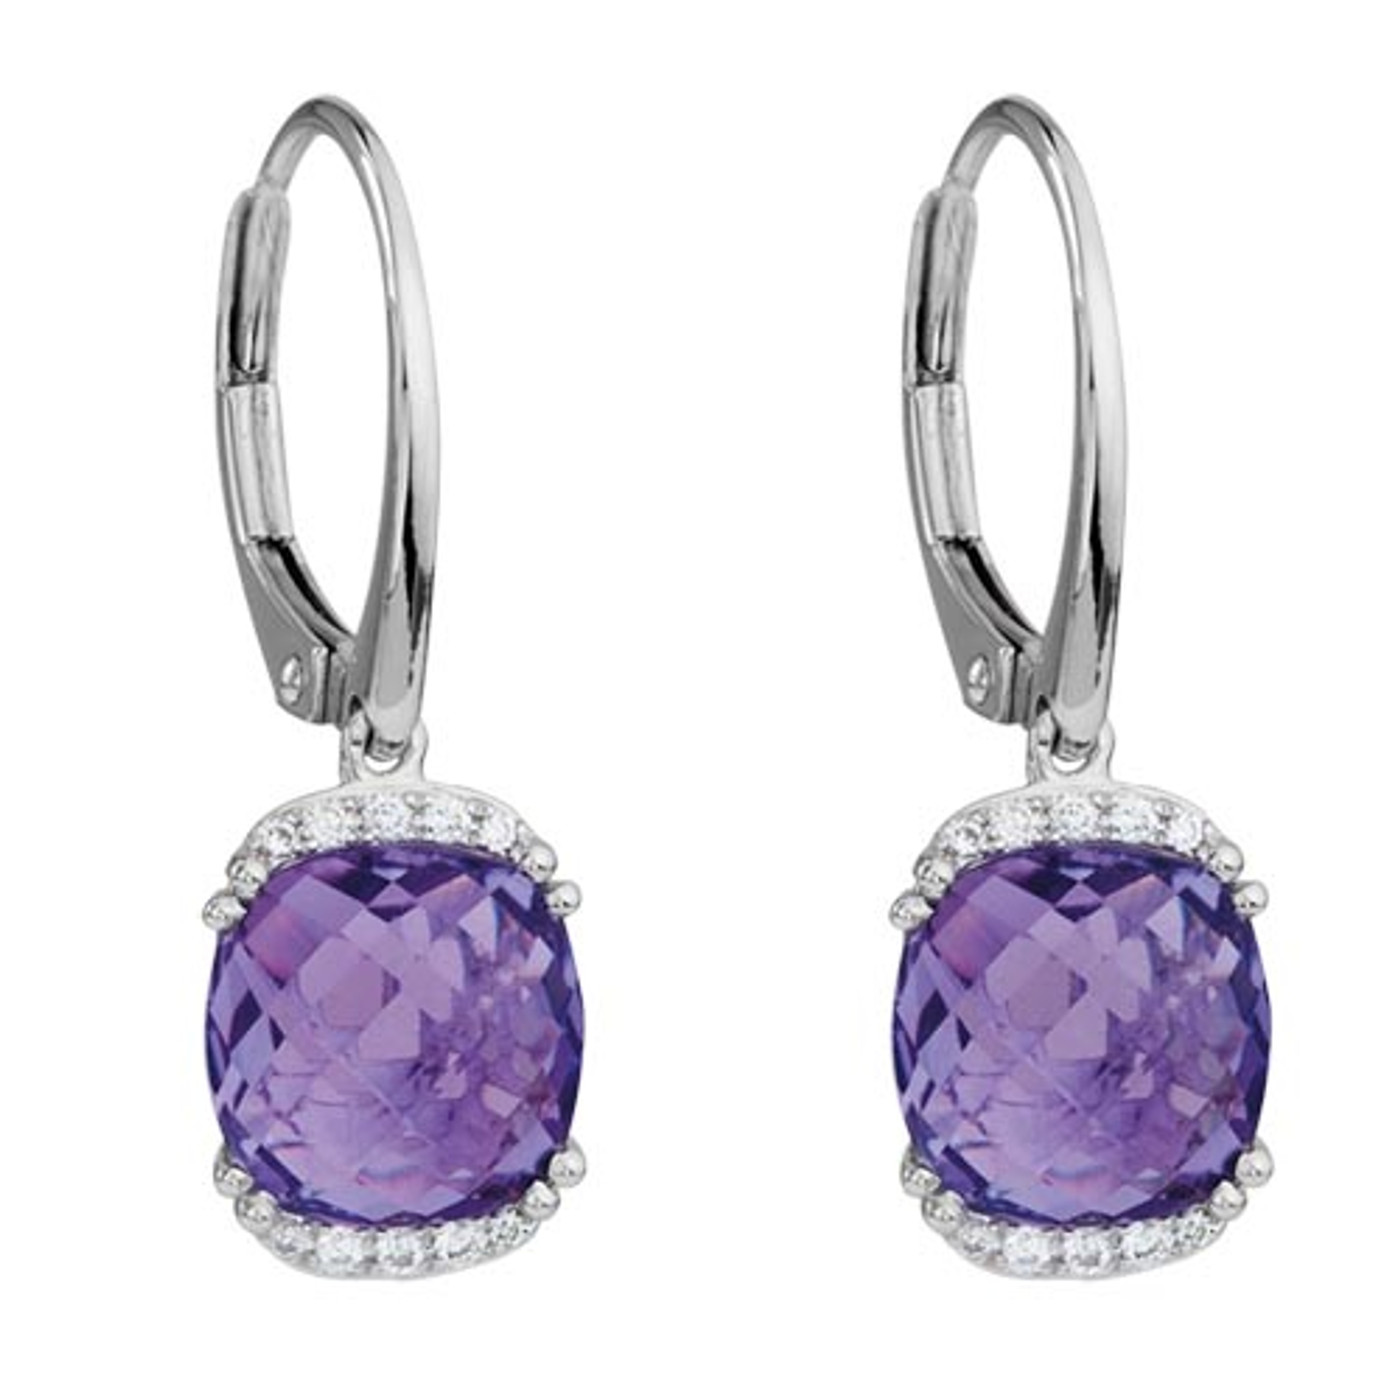 14 Karat White Gold  .09 DTW with Cushion Amethyst Leverbacks